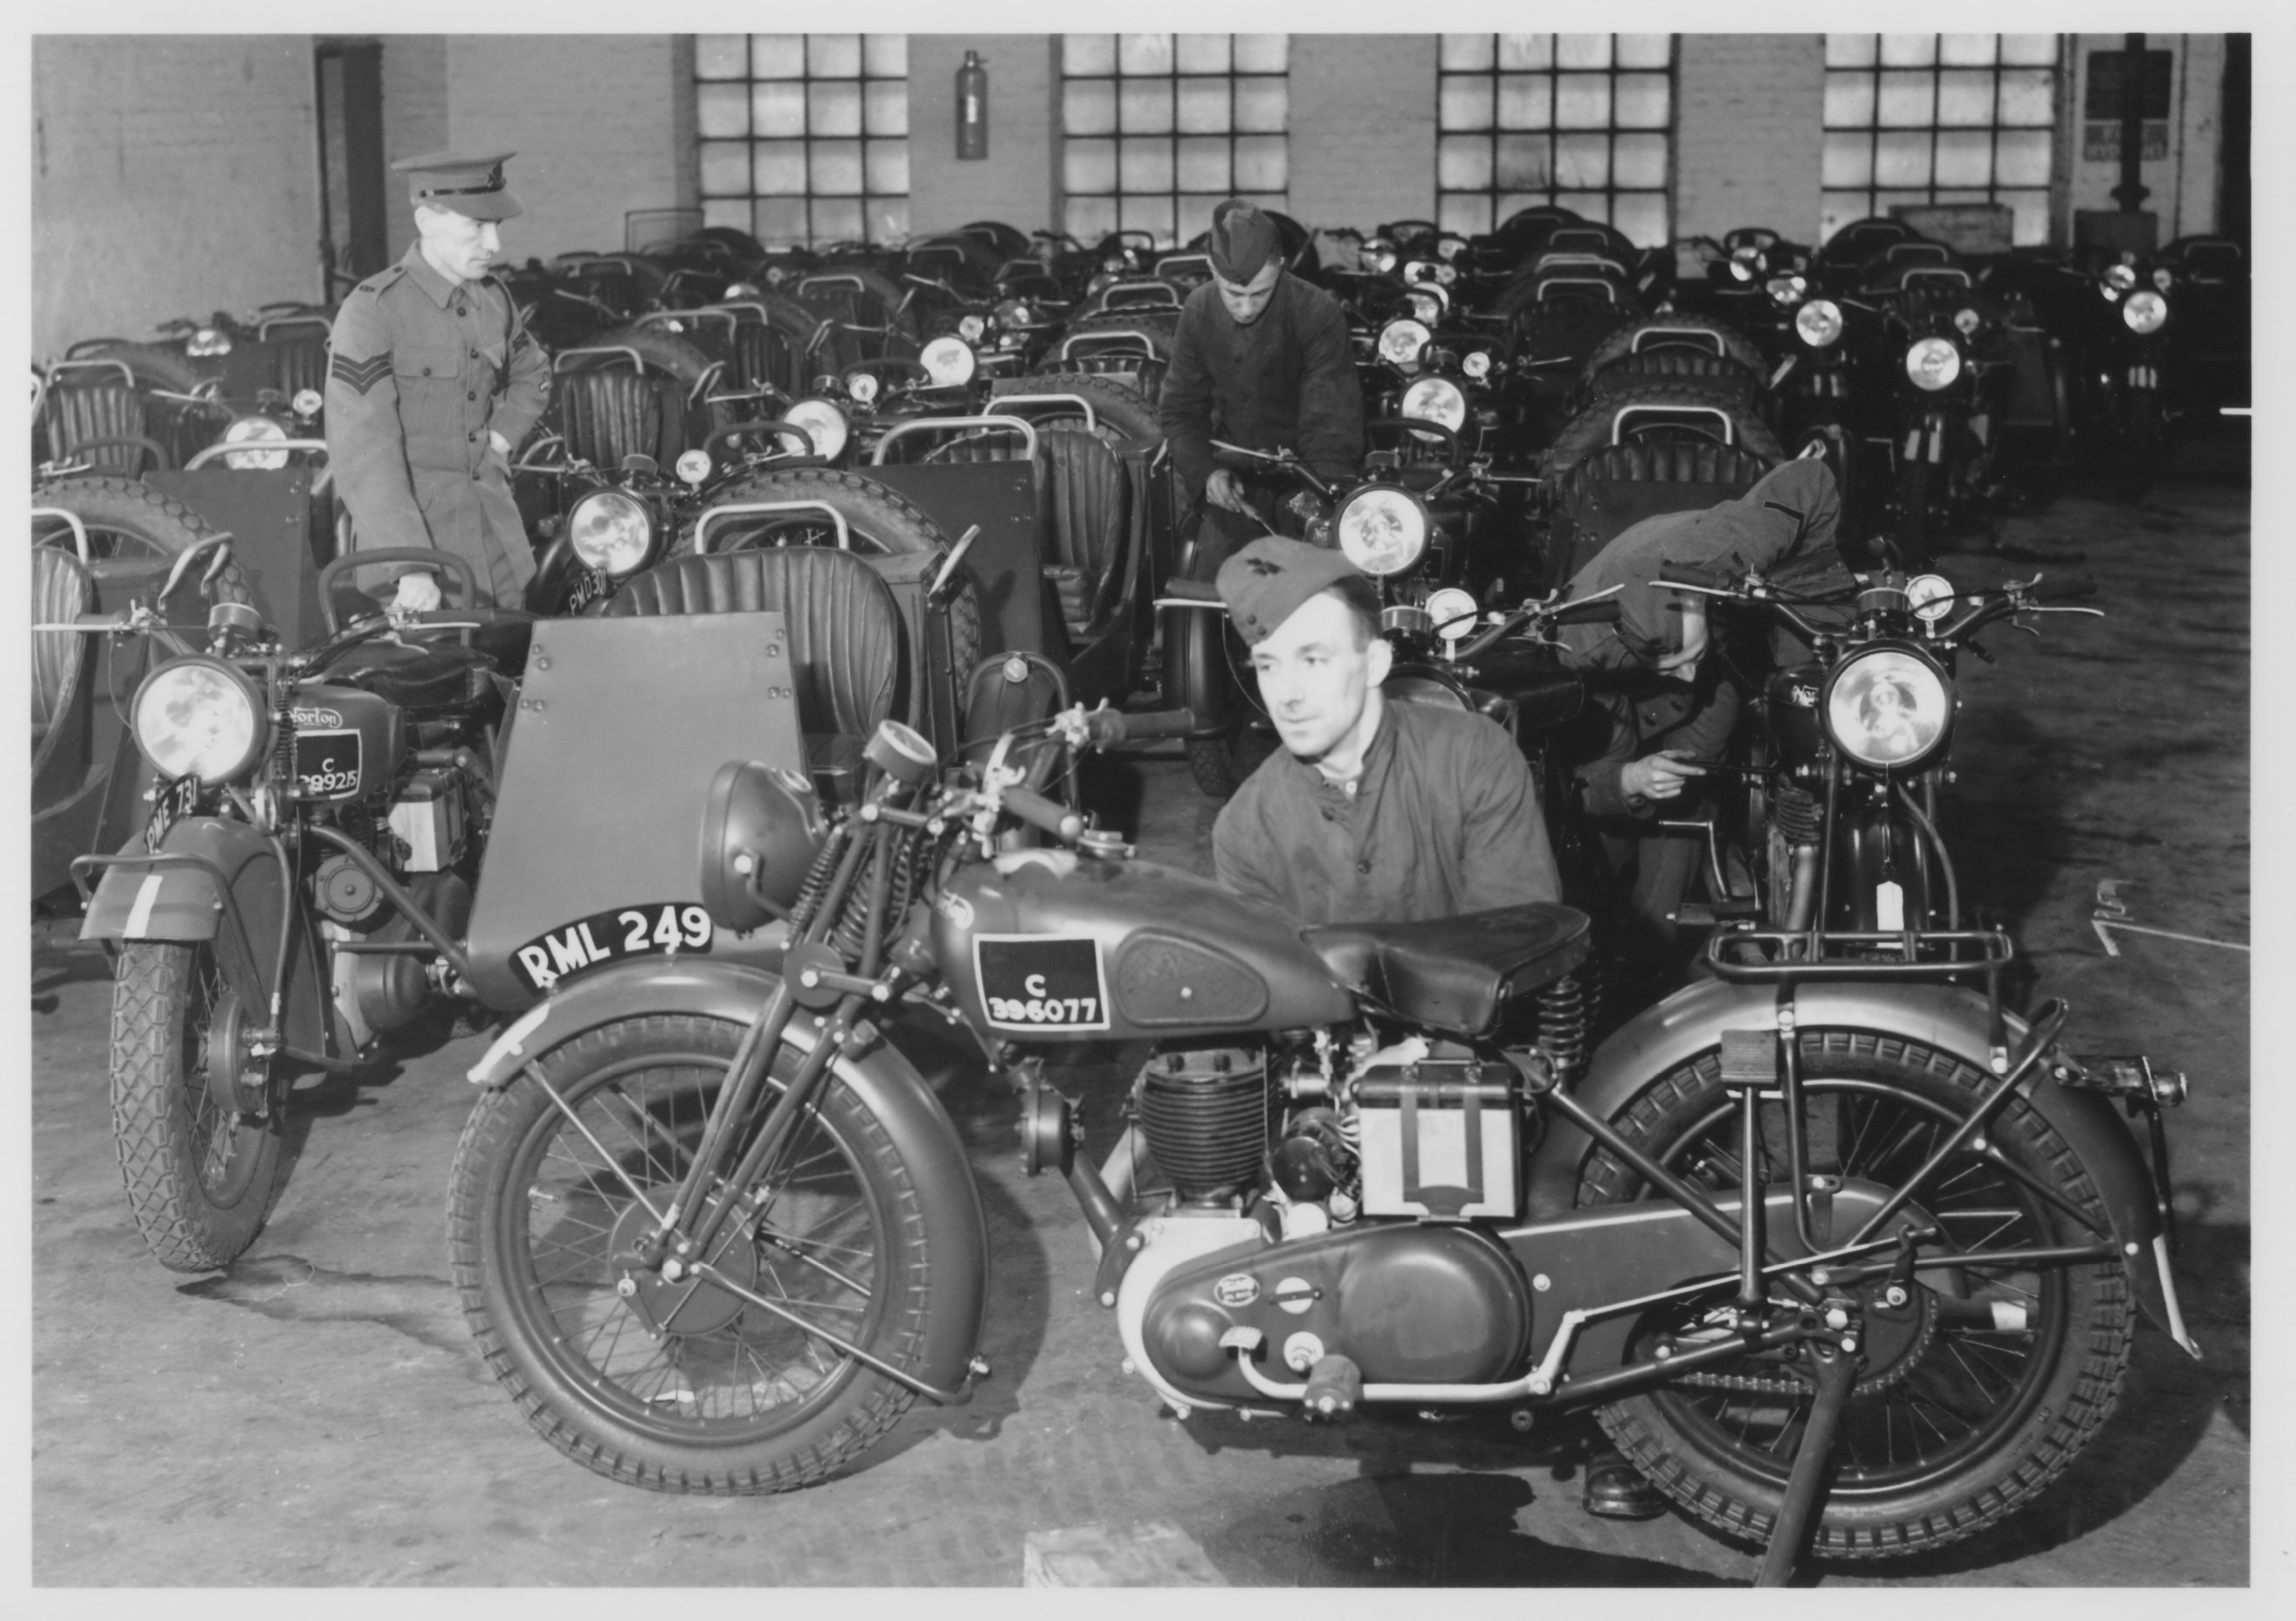 WD-1st-Battalion-Queen-Victoria-s-Rifles-QVR-a-TA-regiment-affiliated-to-The-King-s-Royal-Rifle-Corps-training-as-a-motor-cycle-reconnaissance-battalion-in-the-New-Forest-near-Beau-2